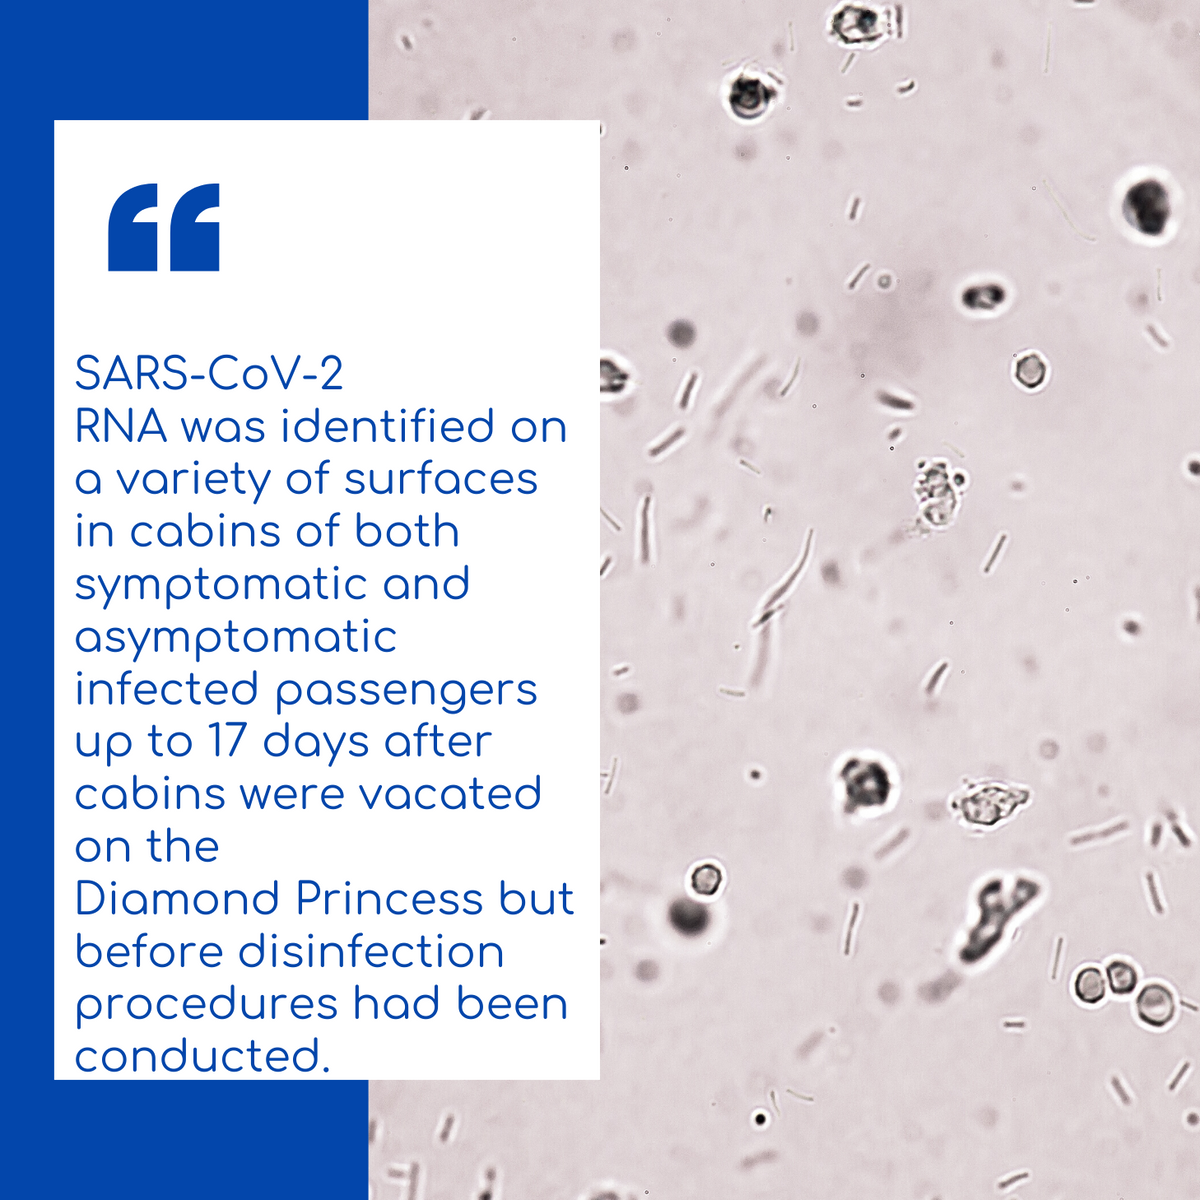 SARS-CoV-2 RNA was identified on a variety of surfaces in cabins of both symptomatic and asymptomatic infected passengers up to 17 days after cabins were vacated on the Diamond Princess but before disinfection procedures had been conducted.